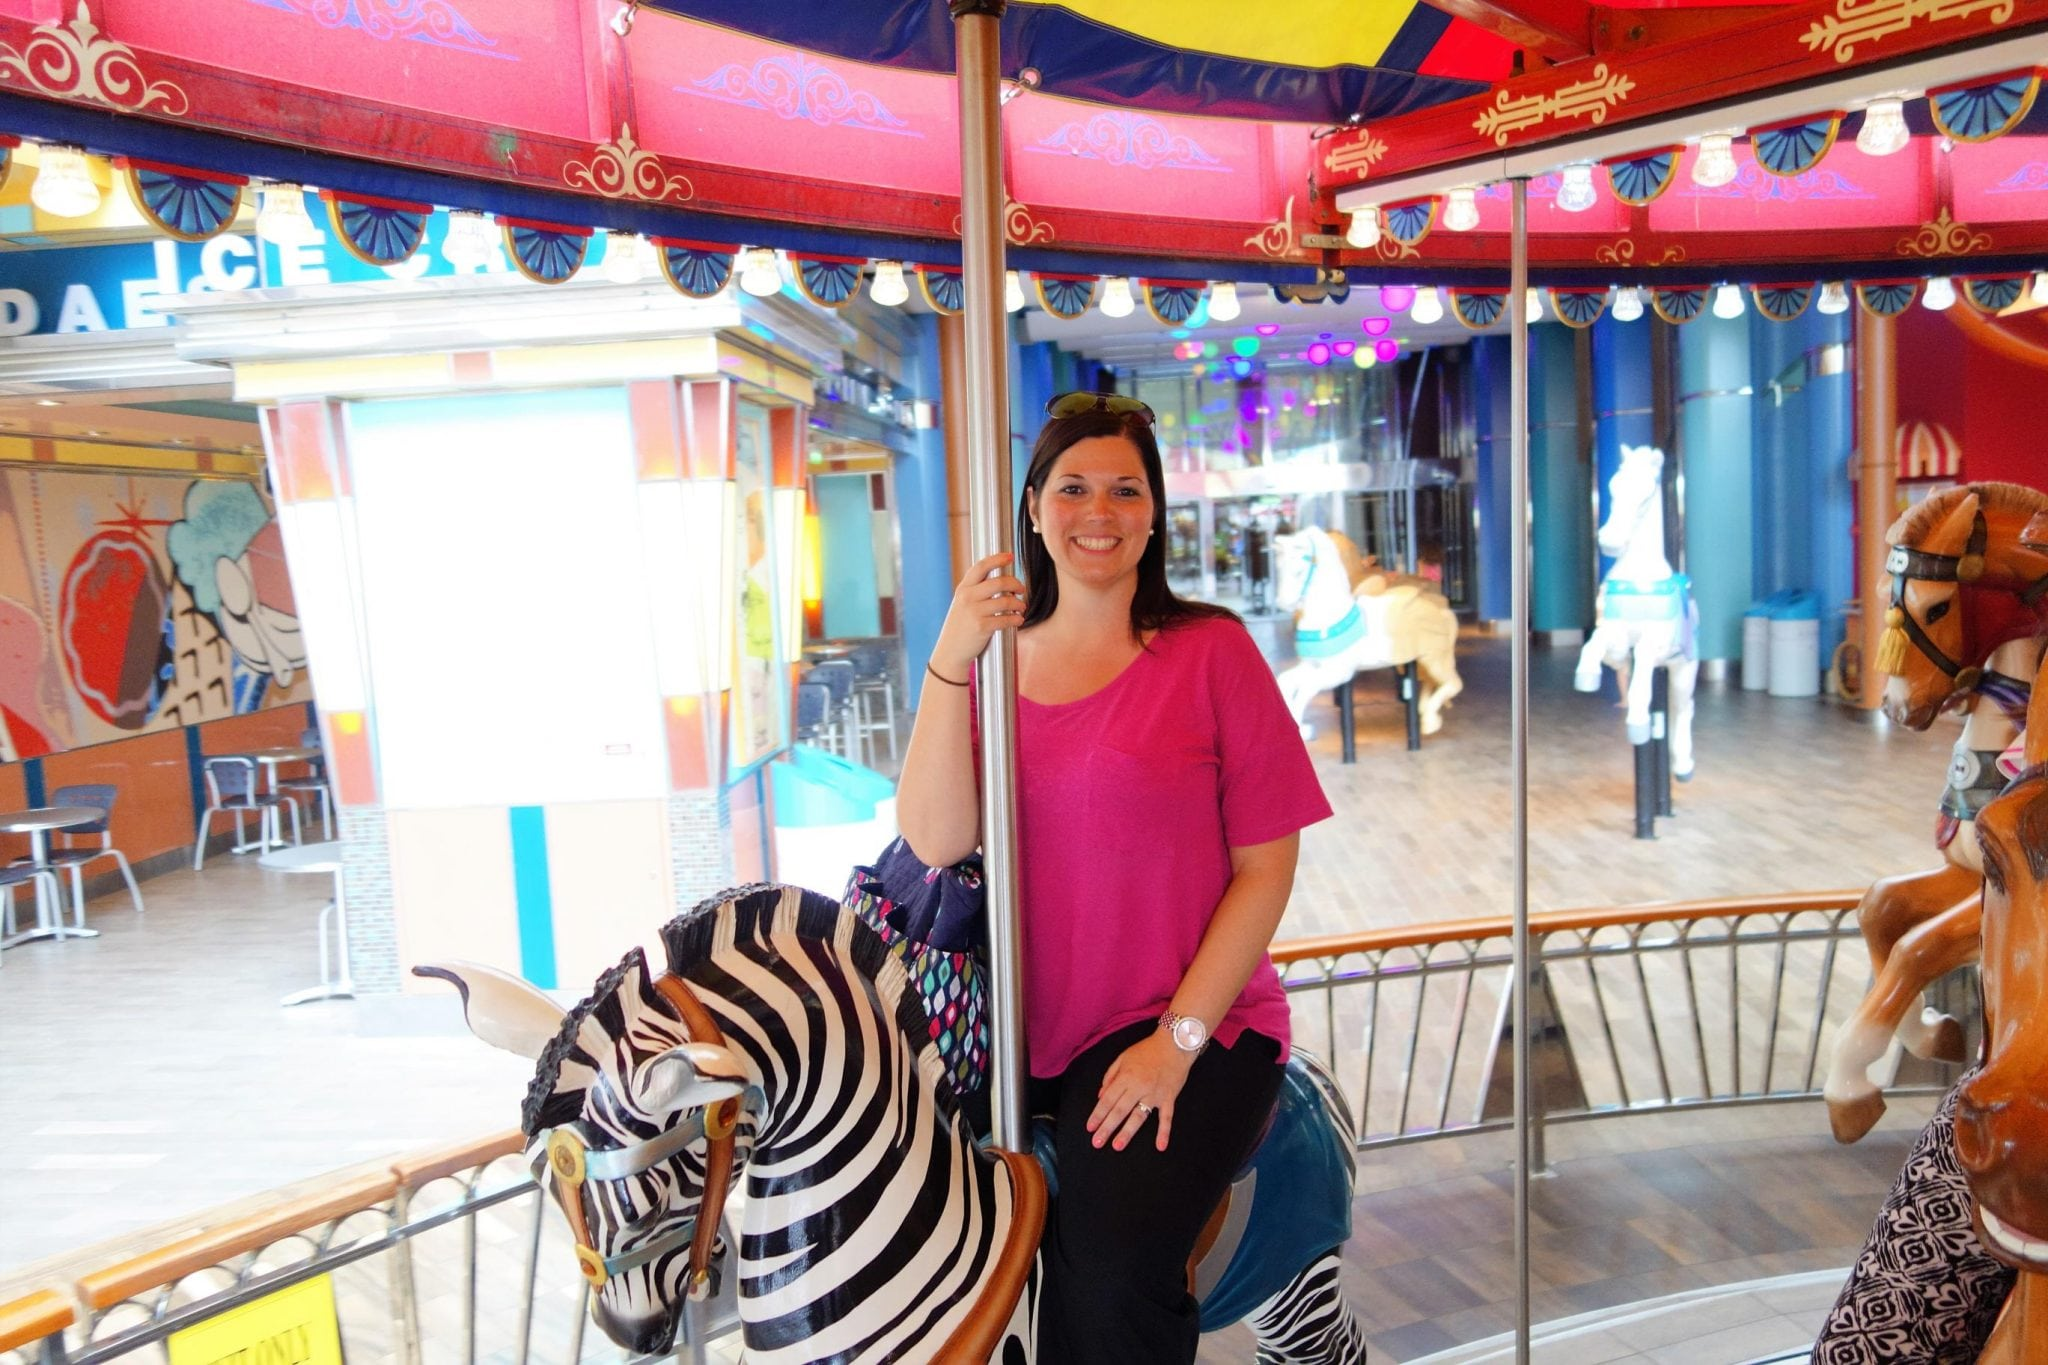 Things to do on Oasis of the Seas